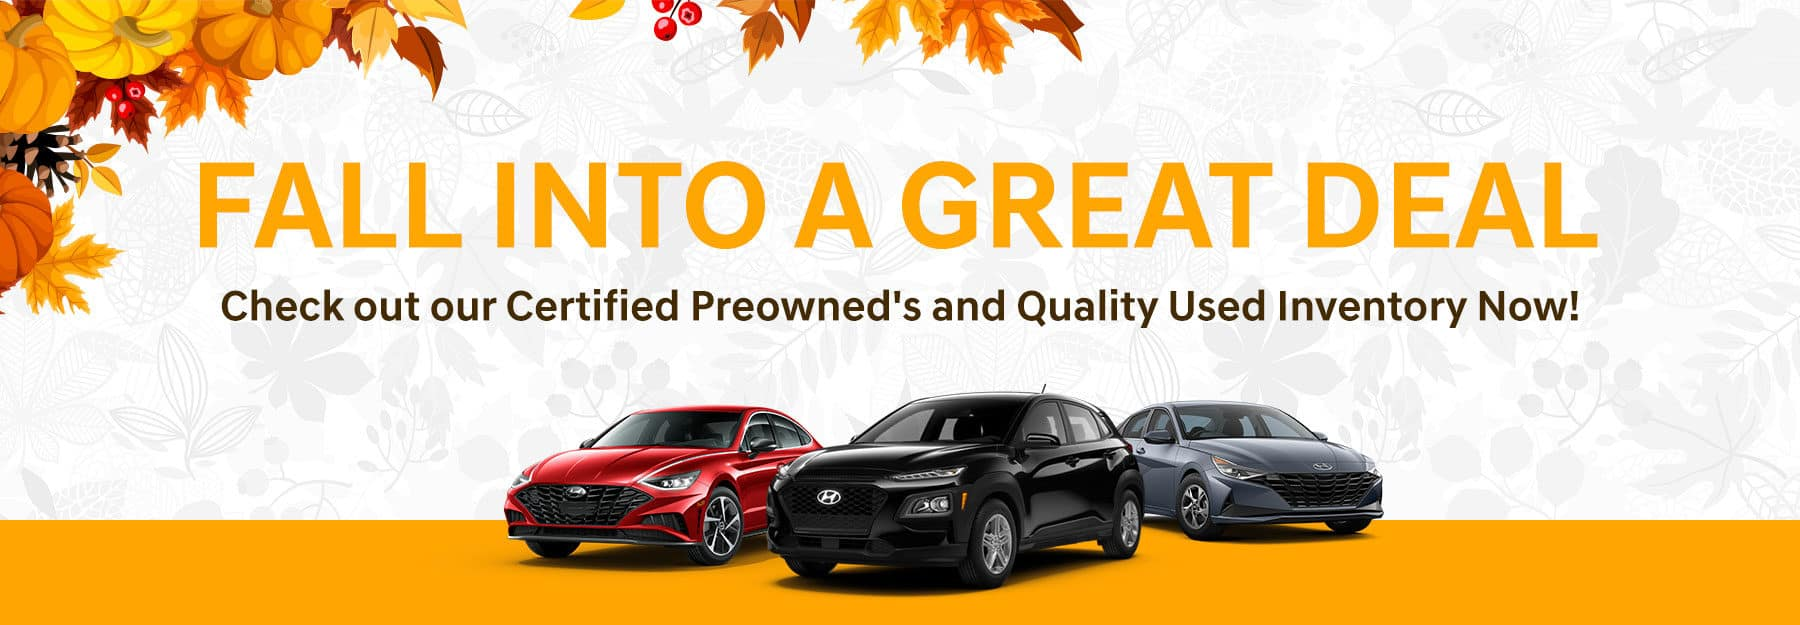 Fall into A Great Deal. Check out our Quality Used Inventory Now!